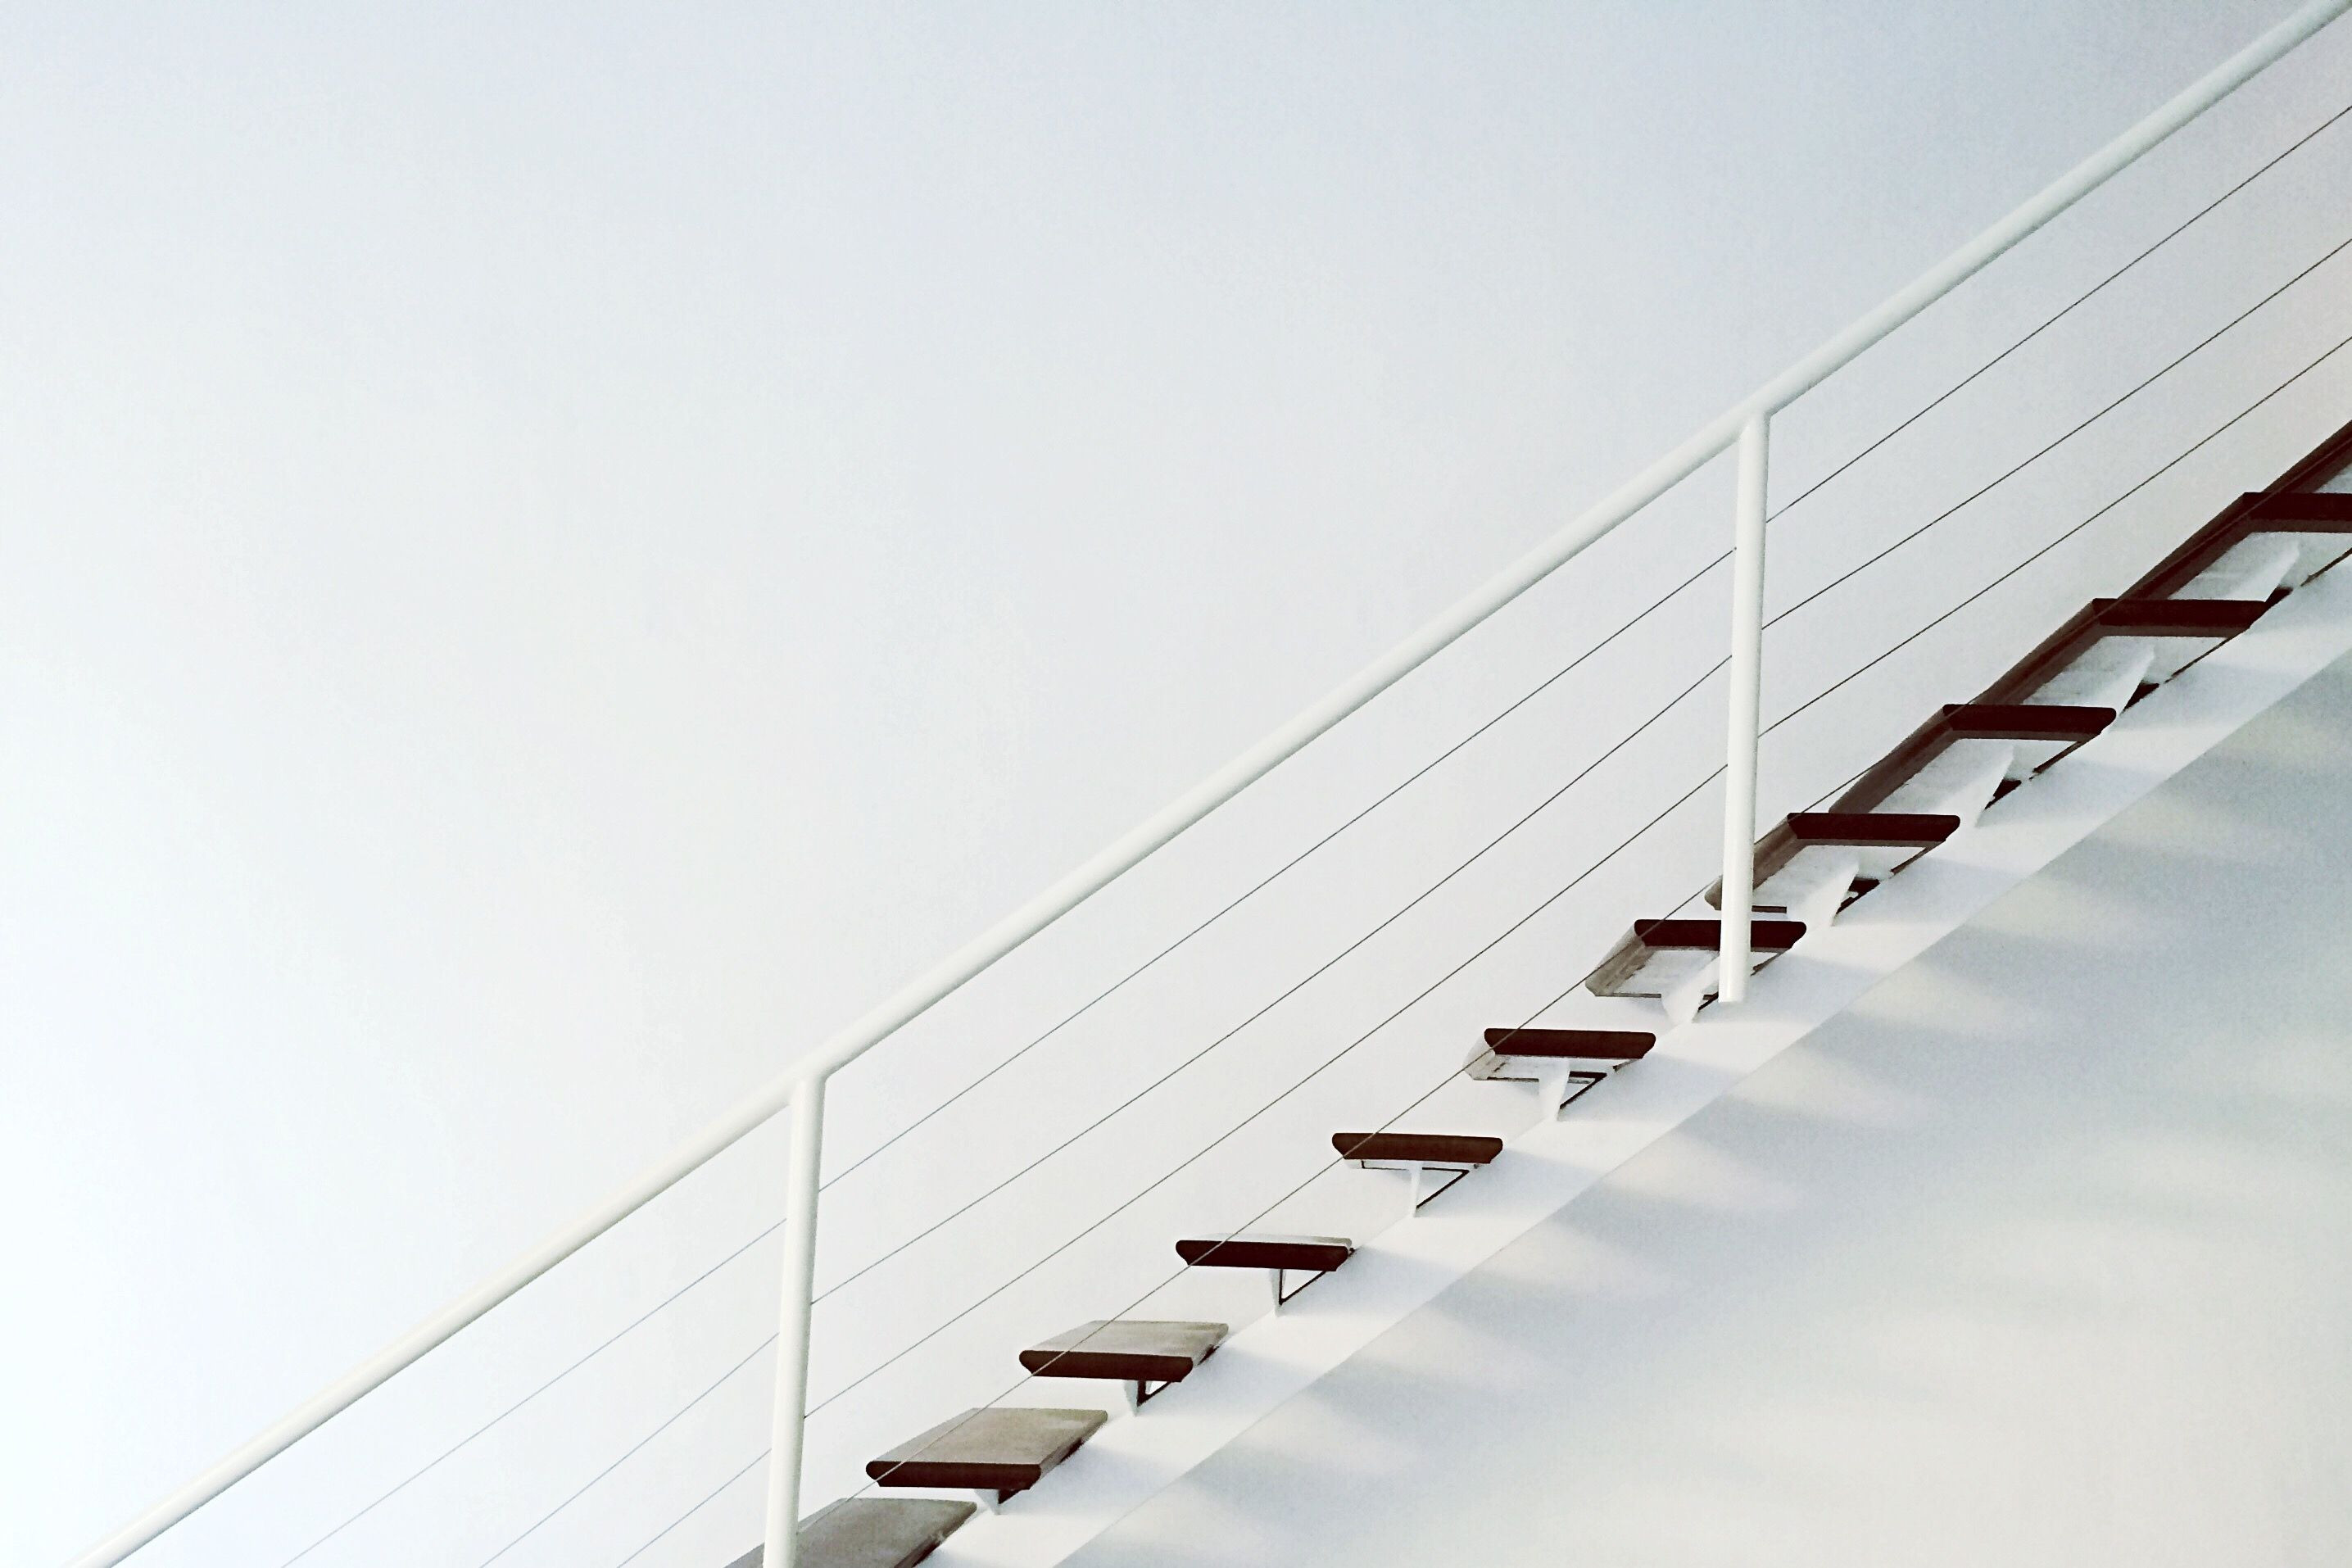 how to install hardwood floors on stairs landing of stair railing kits for interior stairs and balconies regarding side profile of staircase 557228337 5808e5065f9b5805c2e65e47